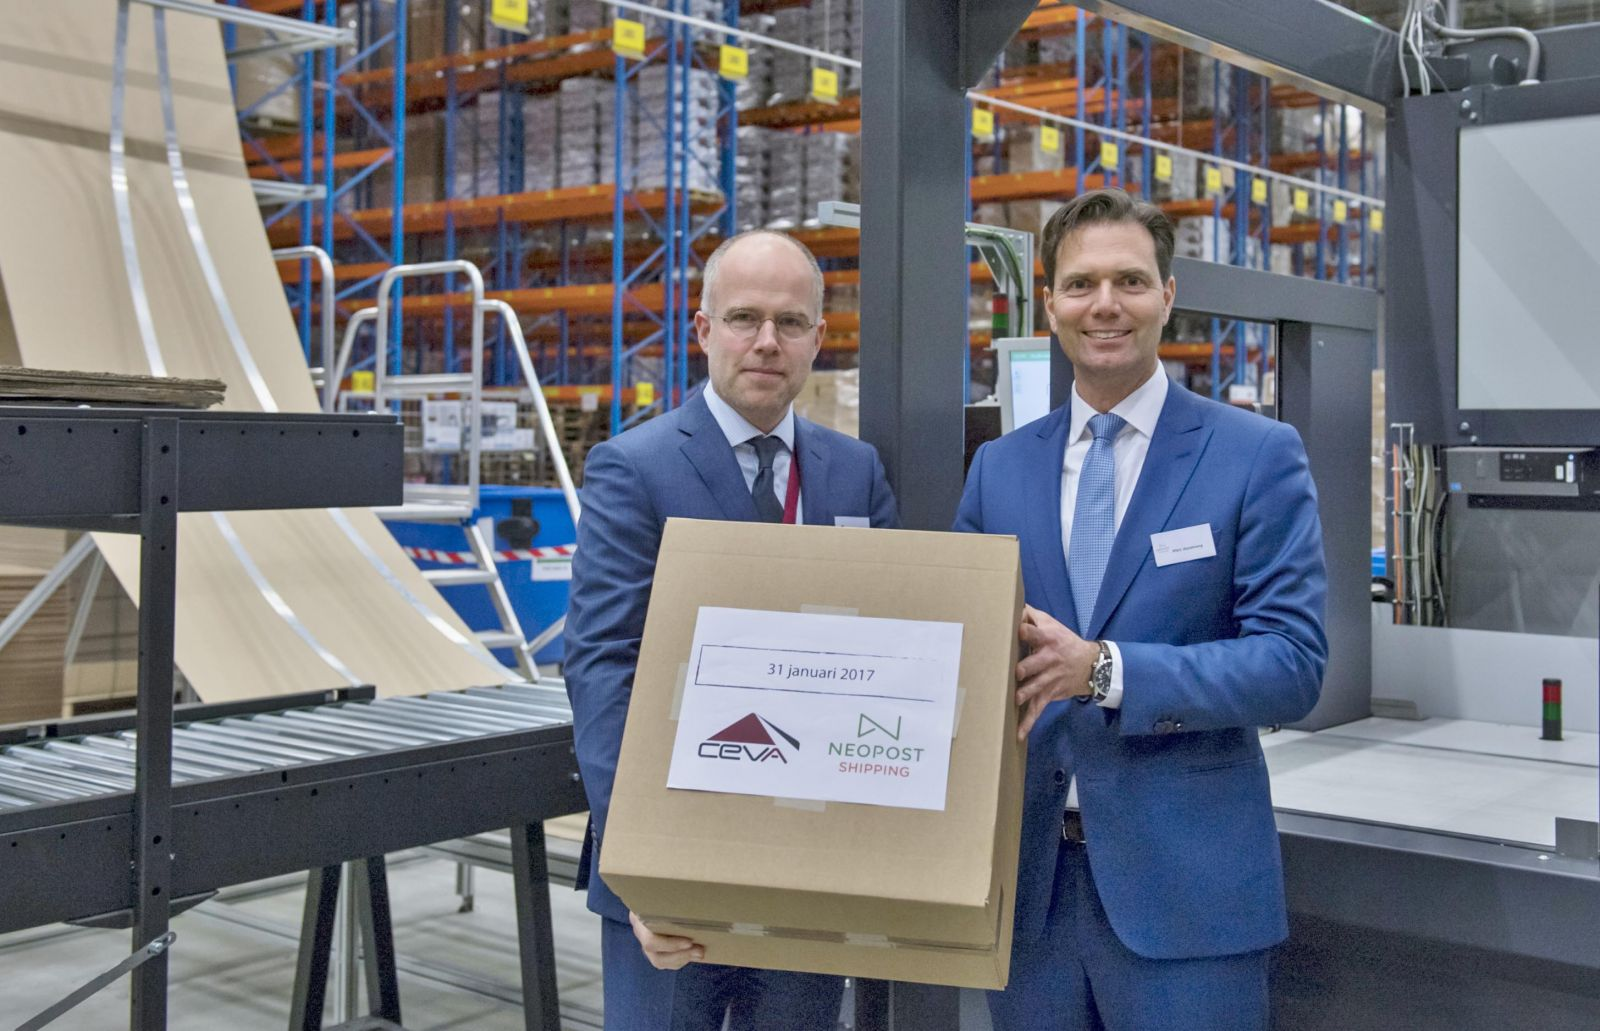 First box ceremony with Willem Veekens, Vice President Contract Logistics Benelux CEVA Logistics and Marc Aandeweg, Head of Global Sales & Operations Quadient Shipping